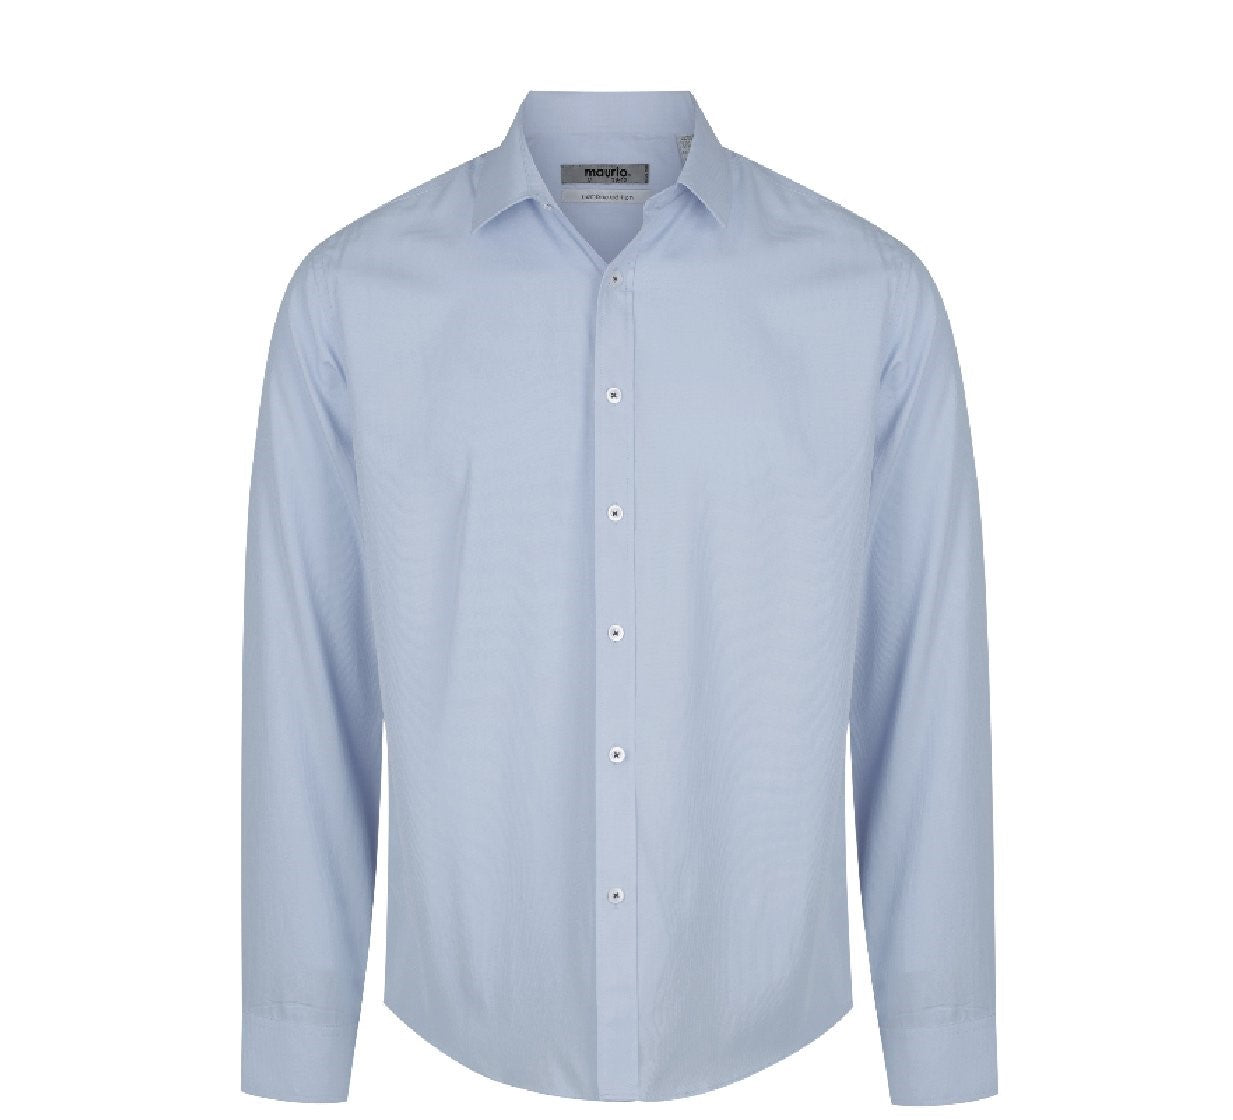 Maurio Mens LS Dress Shirt - Light Blue